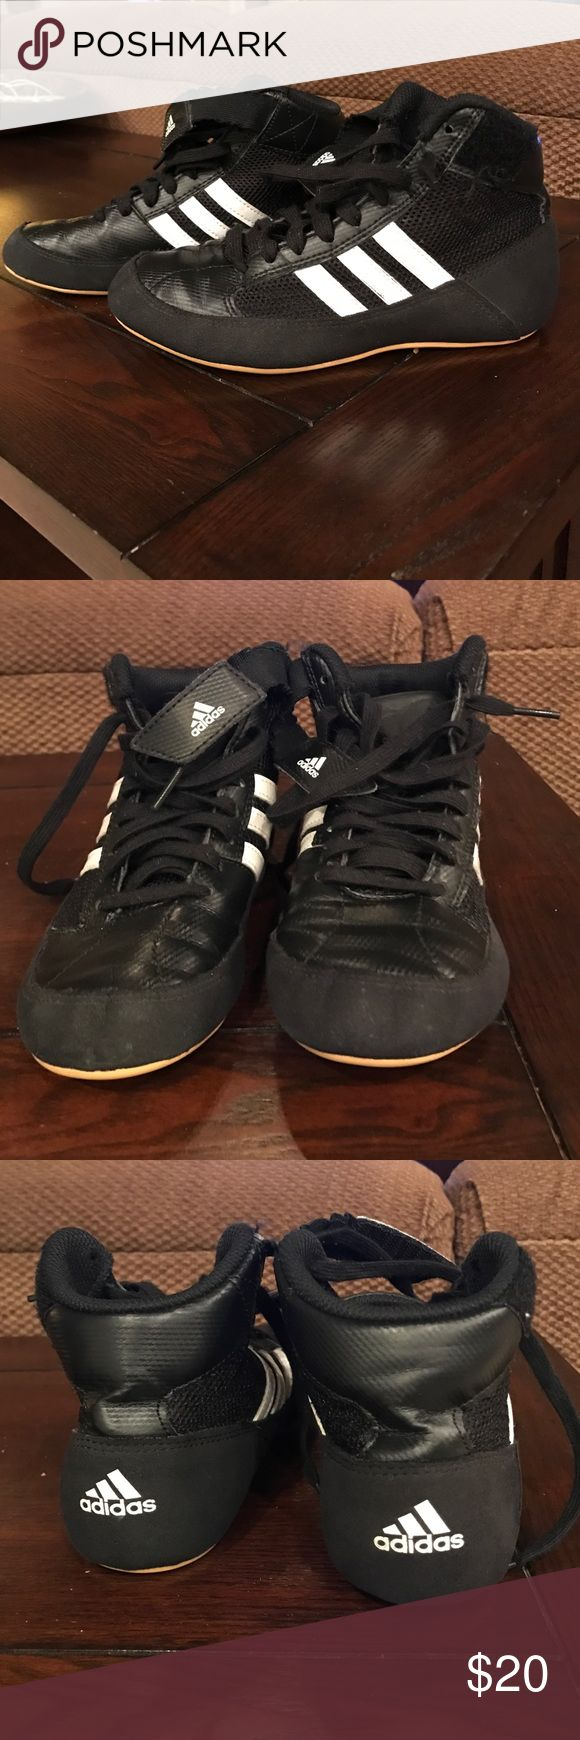 Adidas youth wrestling shoes size 1.5 Adidas youth size 1.5 wrestling shoes. Only worn a few times before we had to buy a bigger size. Great condition and come from a pet and smoke free home. Adidas Shoes